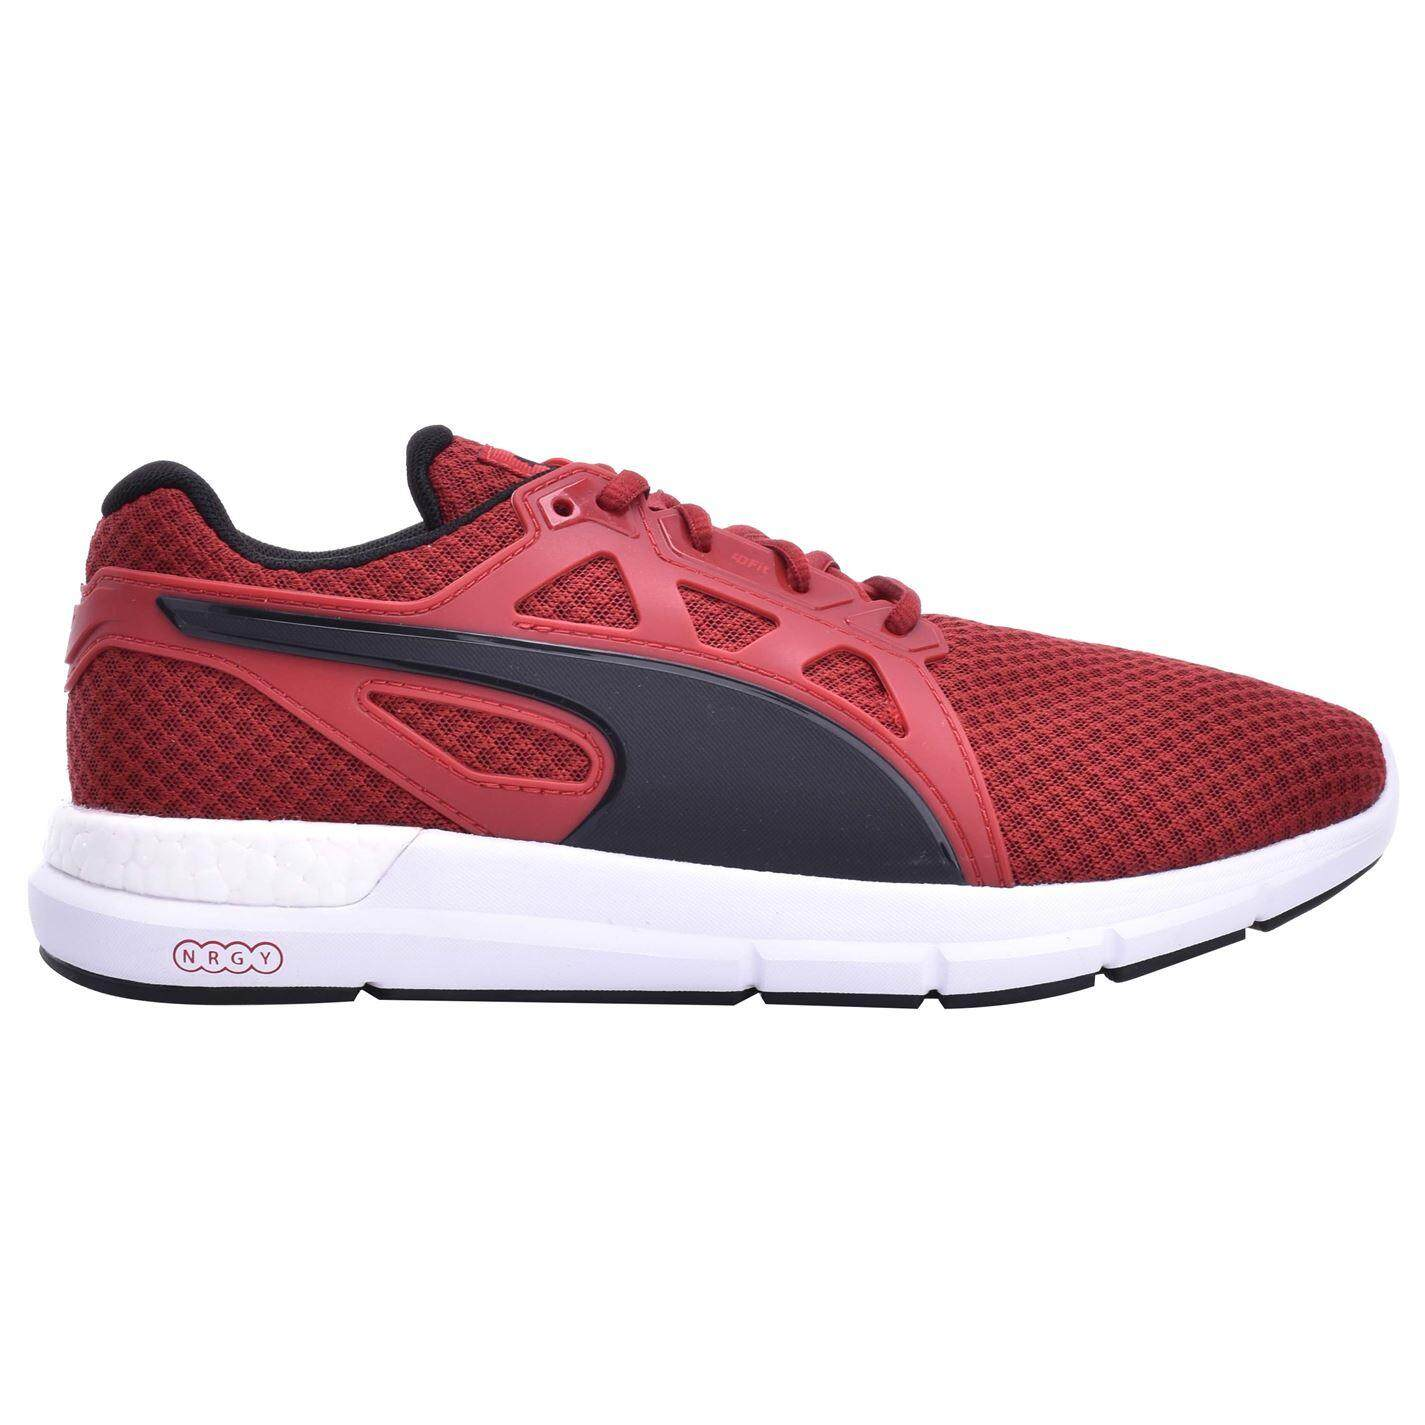 2c6578297ee8 Puma Men s Sports Shoes - Running Shoes price in Malaysia - Best ...